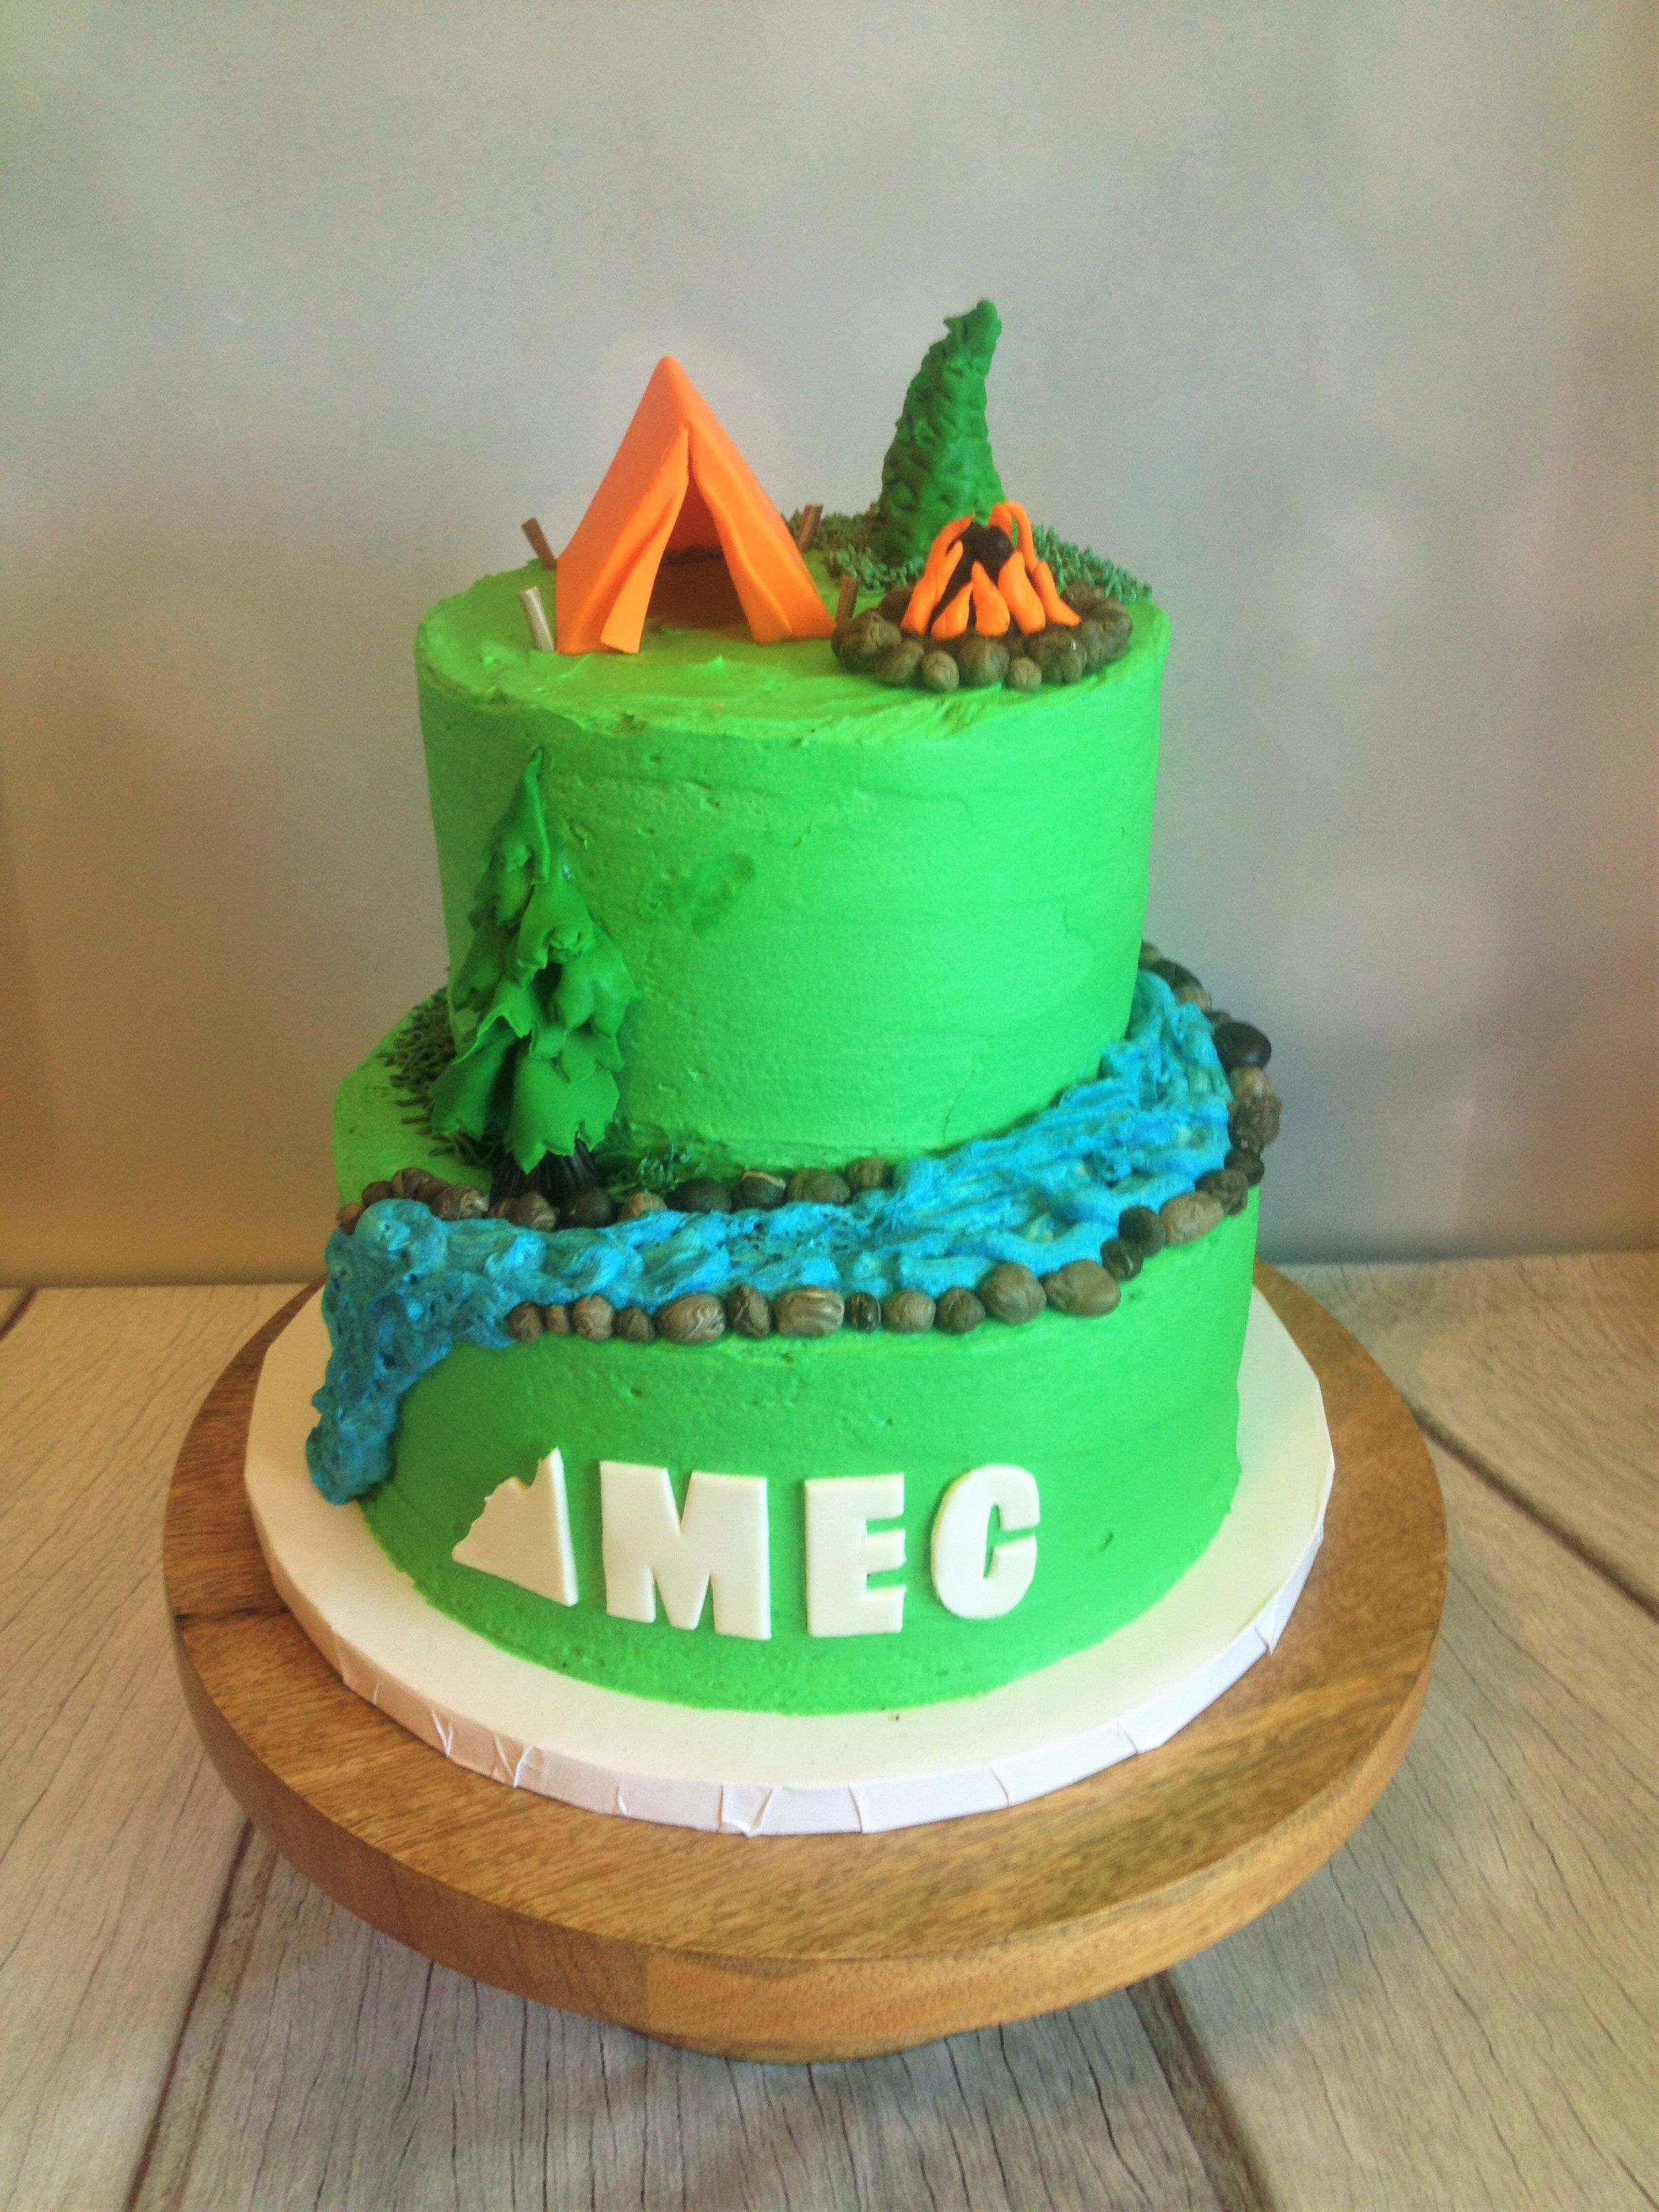 This Cake Was Made For The Grand Opening Of Mountain Equipment Coop